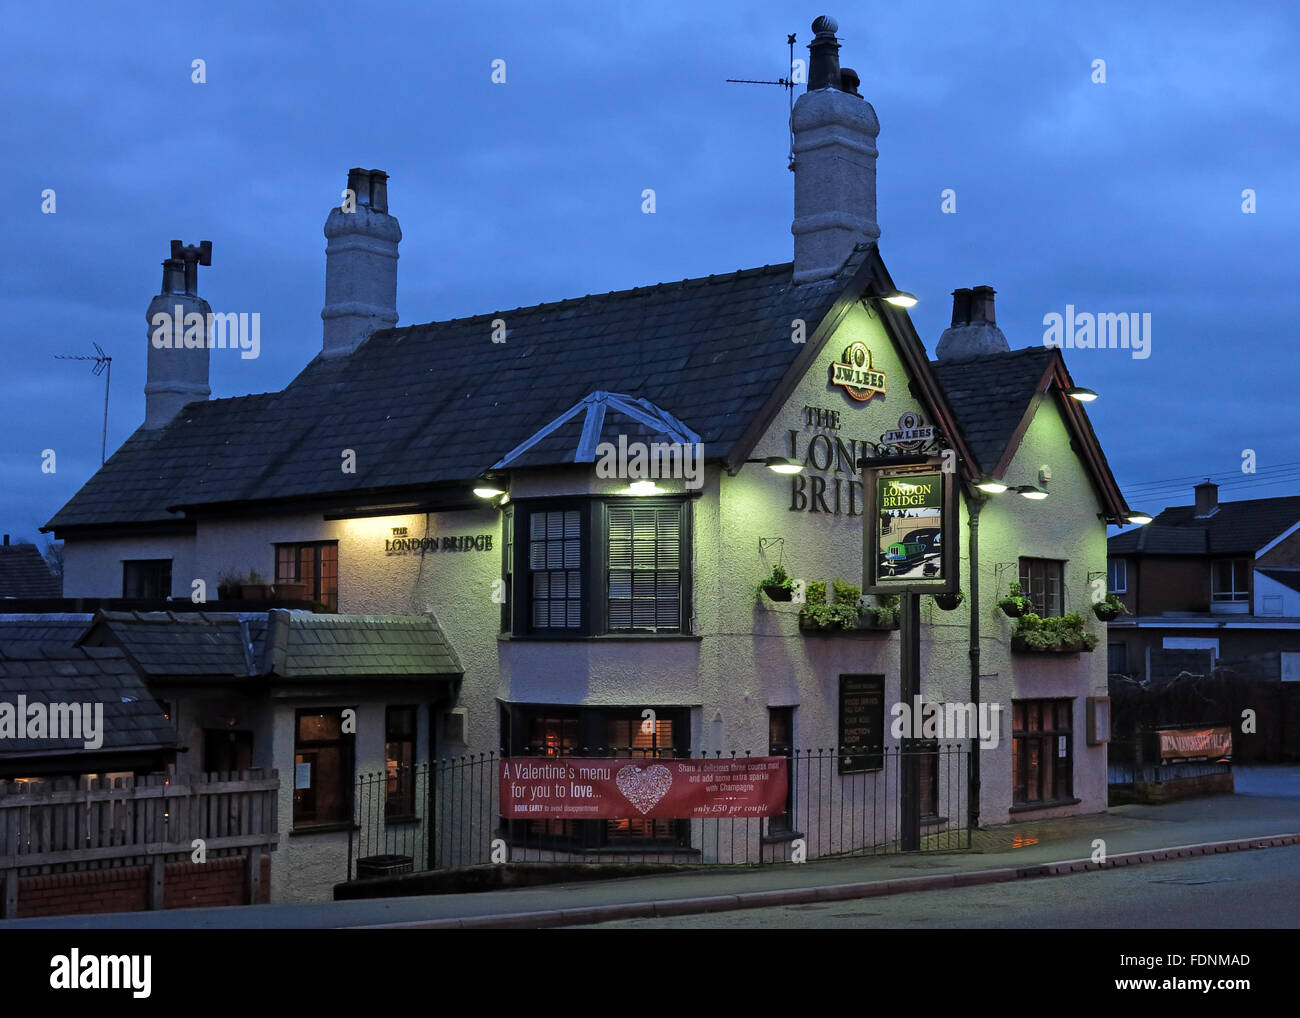 Lees,dusk,night,time,nighttime,beer,ale,house,alehouse,winter,the,south,Cheshire,England,UK,GB,Great,Britain,road,A49,lit,lights,nightshot,shot,South,Appleton,United Kingdom,South Warrington,GoTonySmith,@HotpixUK,WA45BG,pubs,bars,of,London,classic,tourist,attraction,travel,vacation,Buy Pictures of,Buy Images Of,Images of,Stock Images,WA4 5BG,Pubs Of London,must see